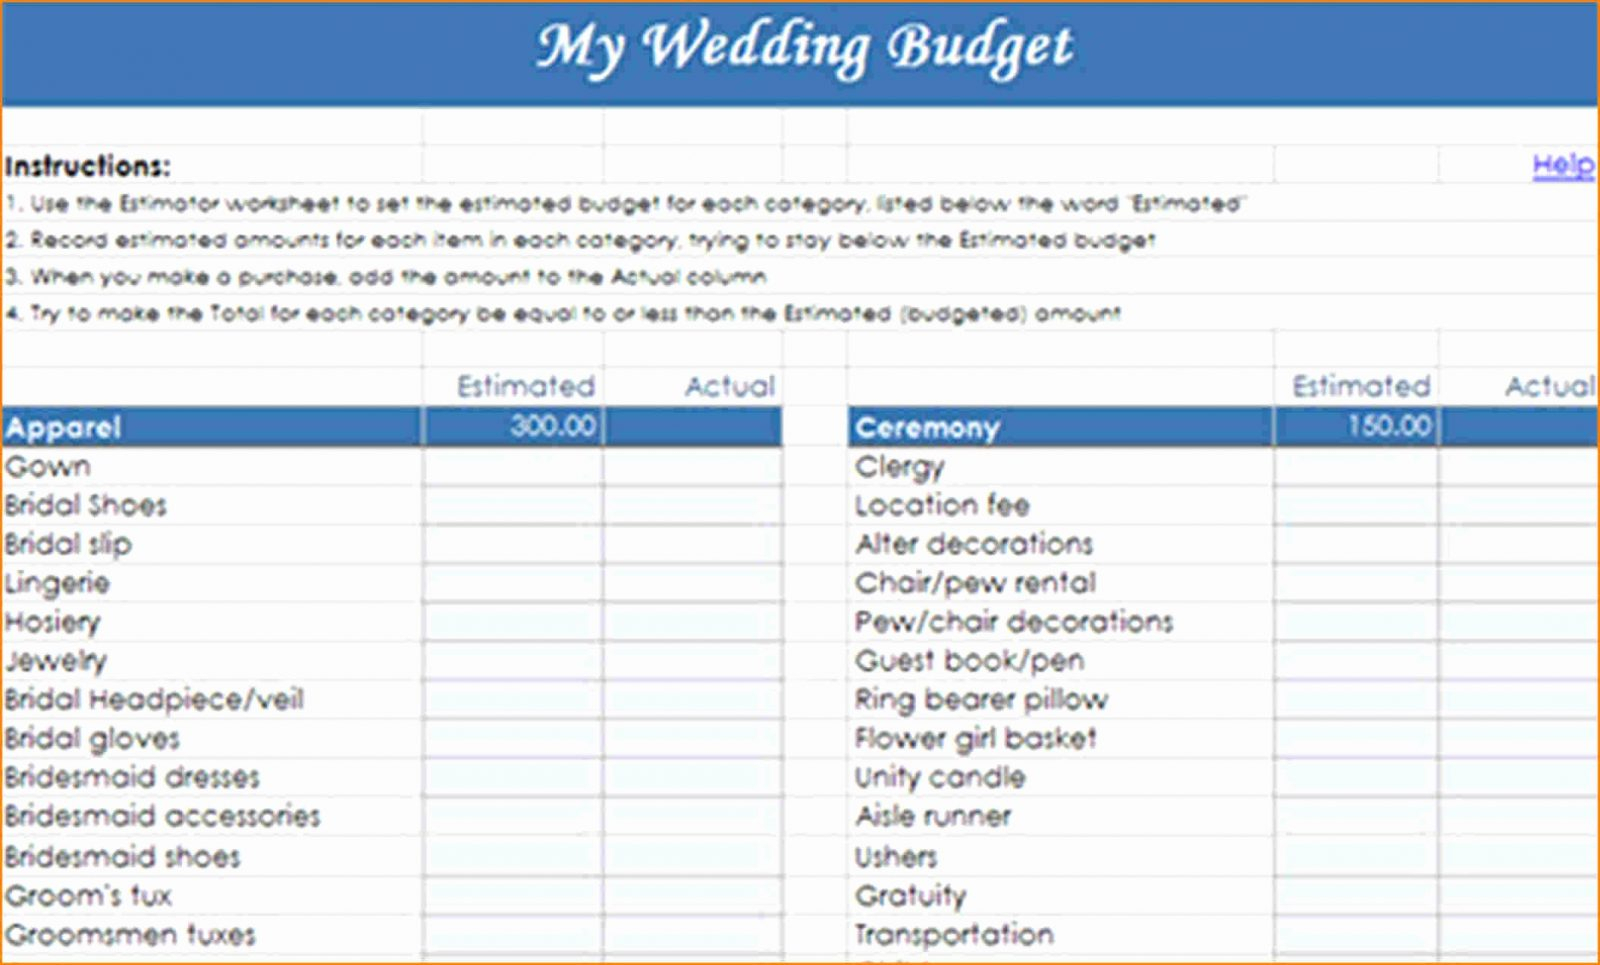 Candle Making Cost Spreadsheet Intended For Wedding Budget